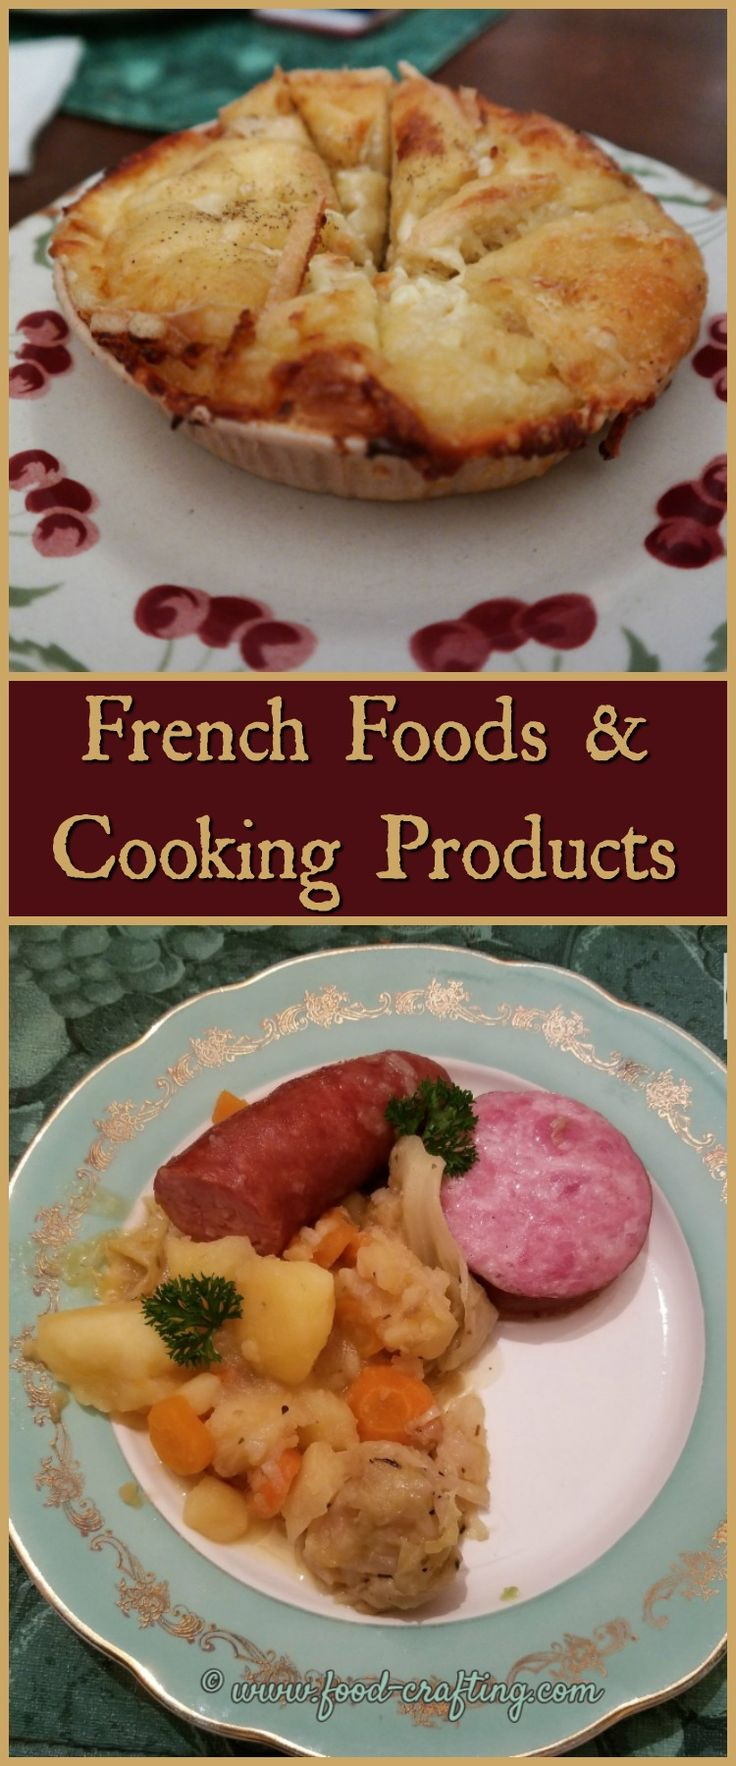 Gift your favorite #chef or yourself with unique #gourmet gifts! A collection of must-have #French food and cooking products for your kitchen pantry. Bon app!